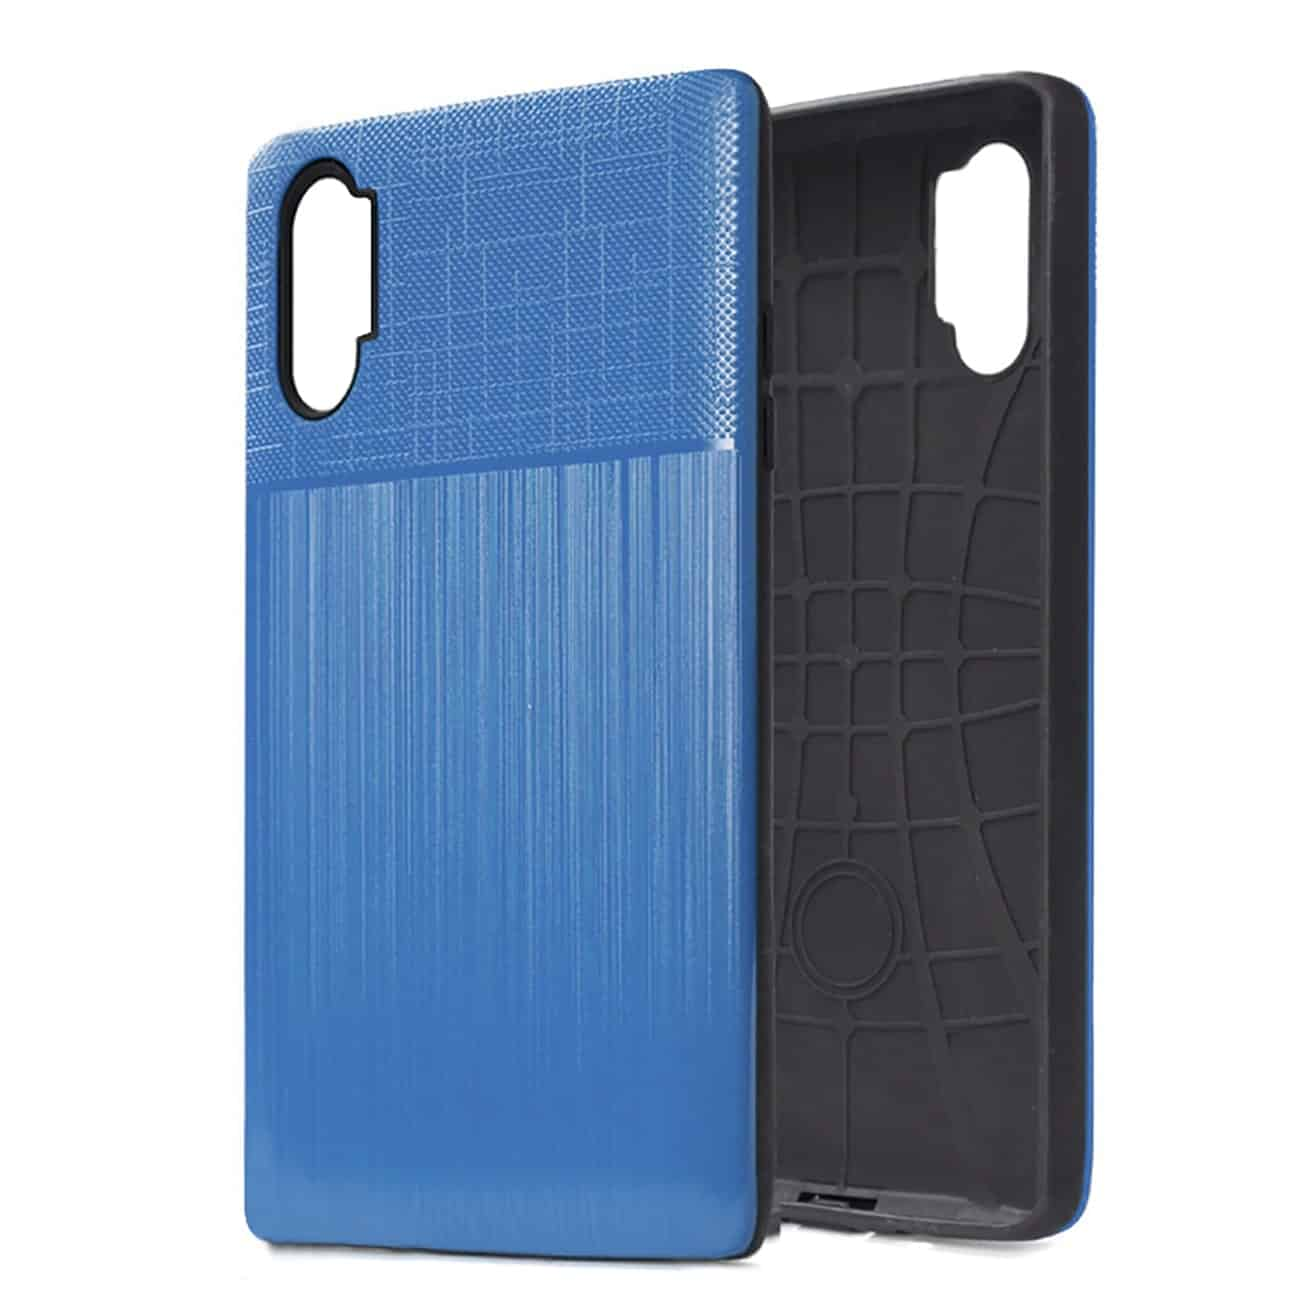 ISTIK SAMSUNG GALAXY NOTE 10 PLUS Lightweight Case In Blue